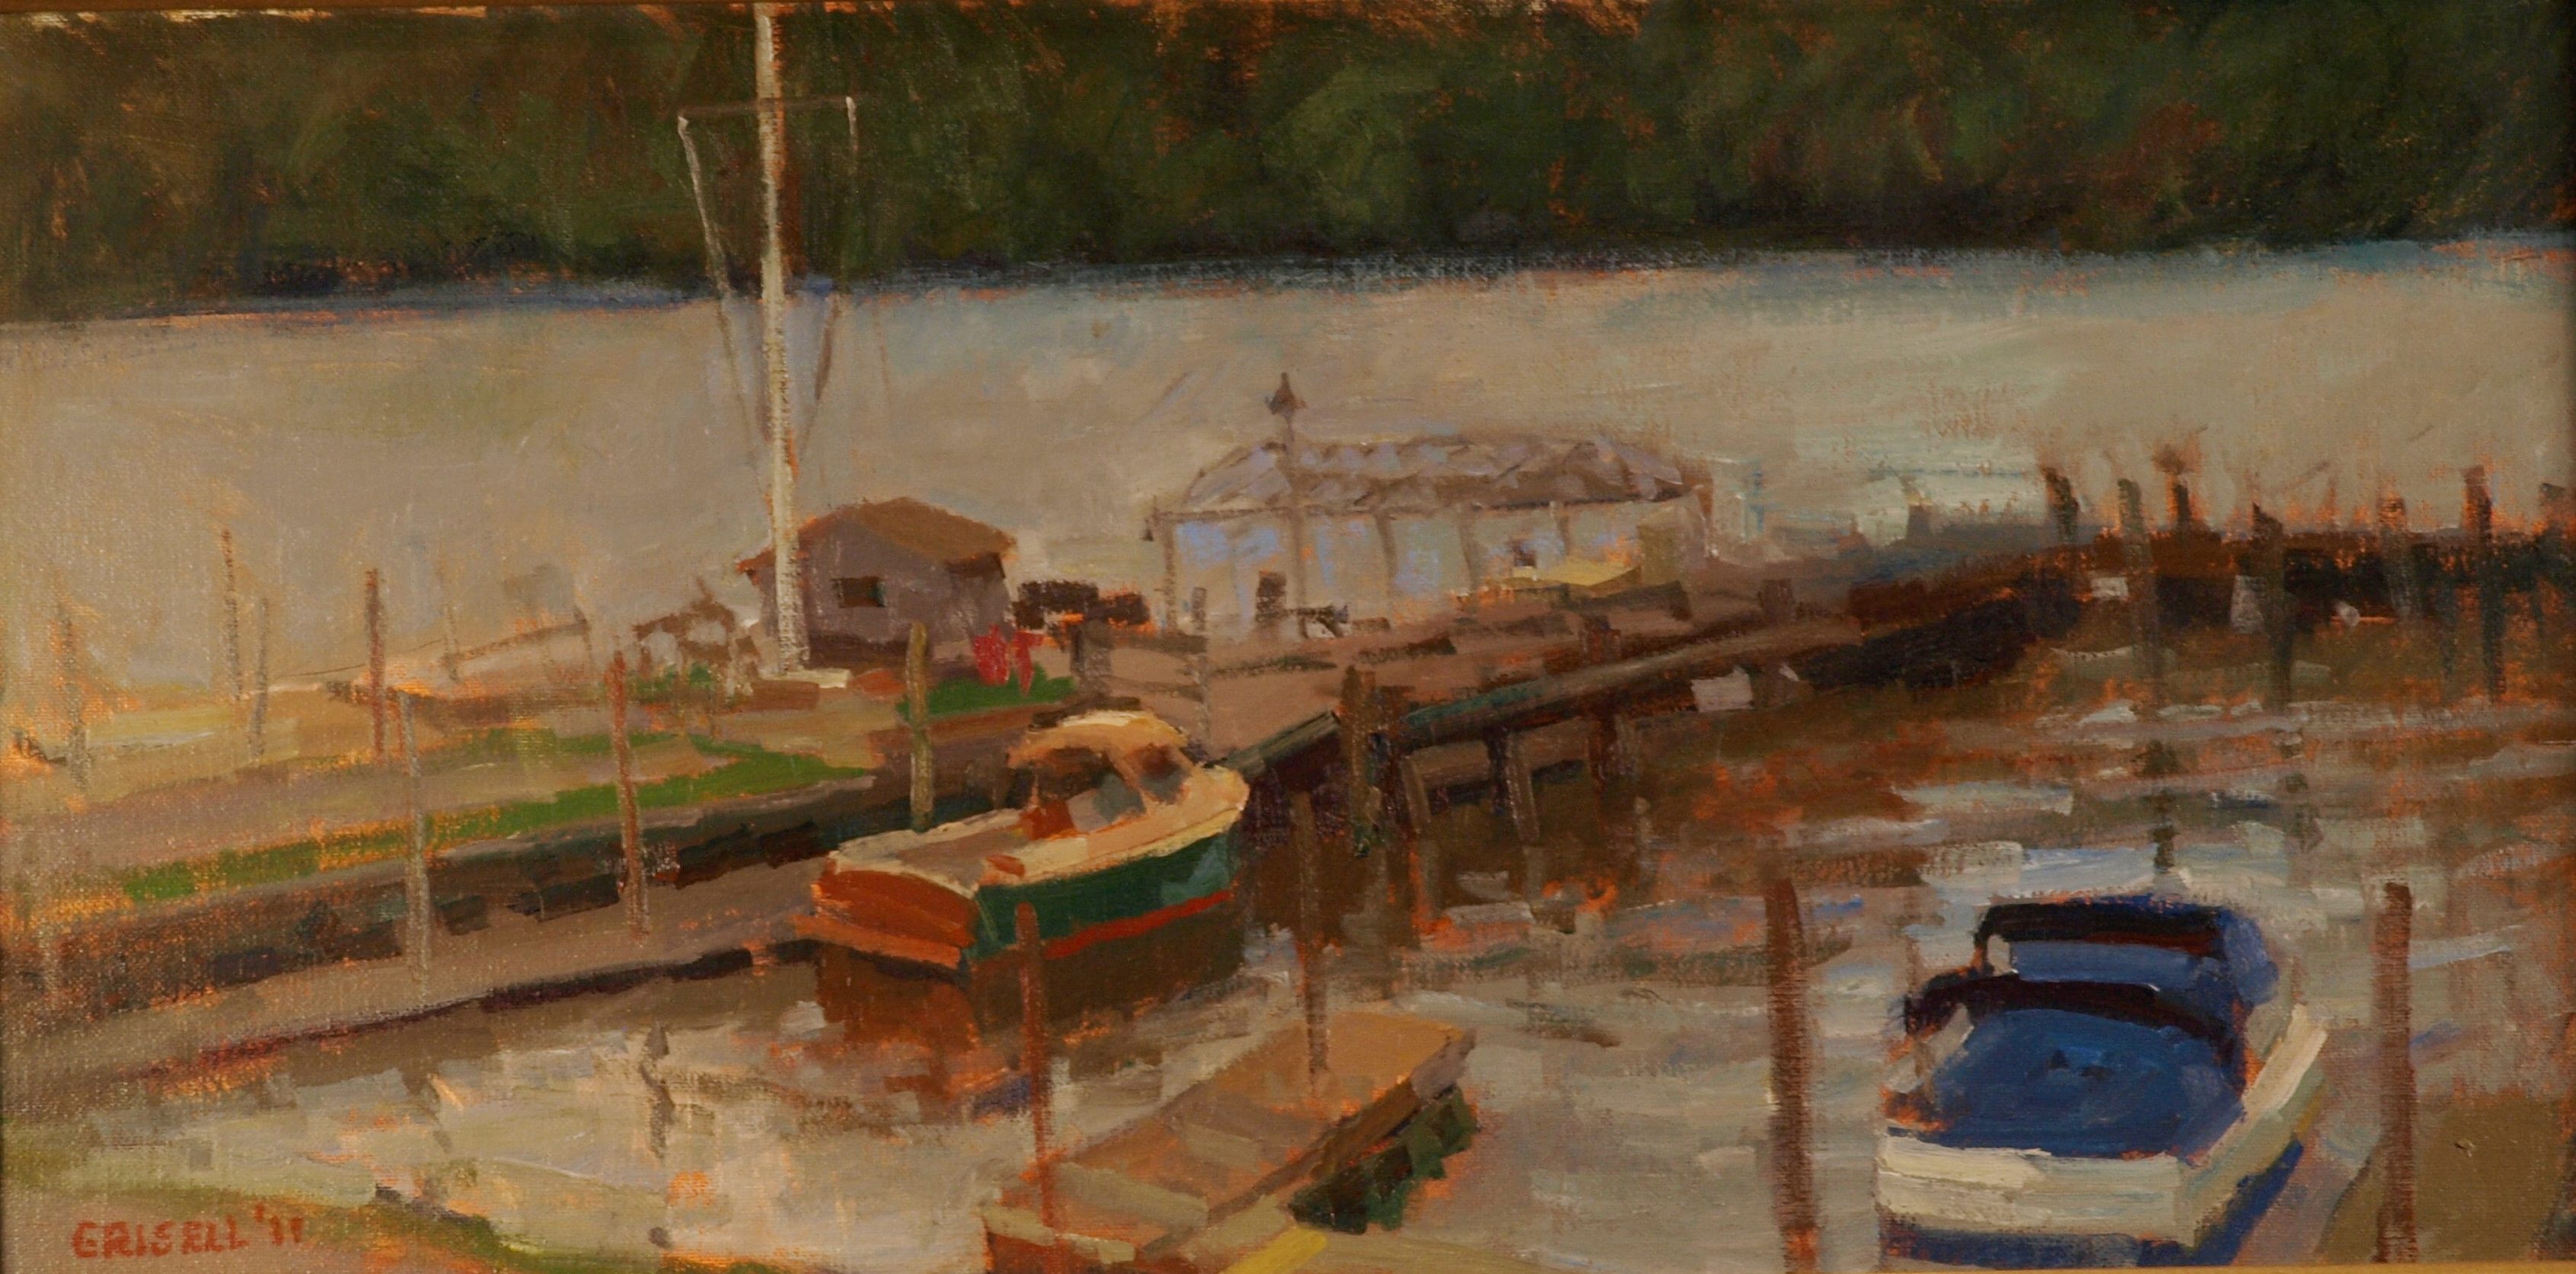 Boats Garrison, Oil on Canvas on Panel, 12 x 24 Inches, by Susan Grisell, $450